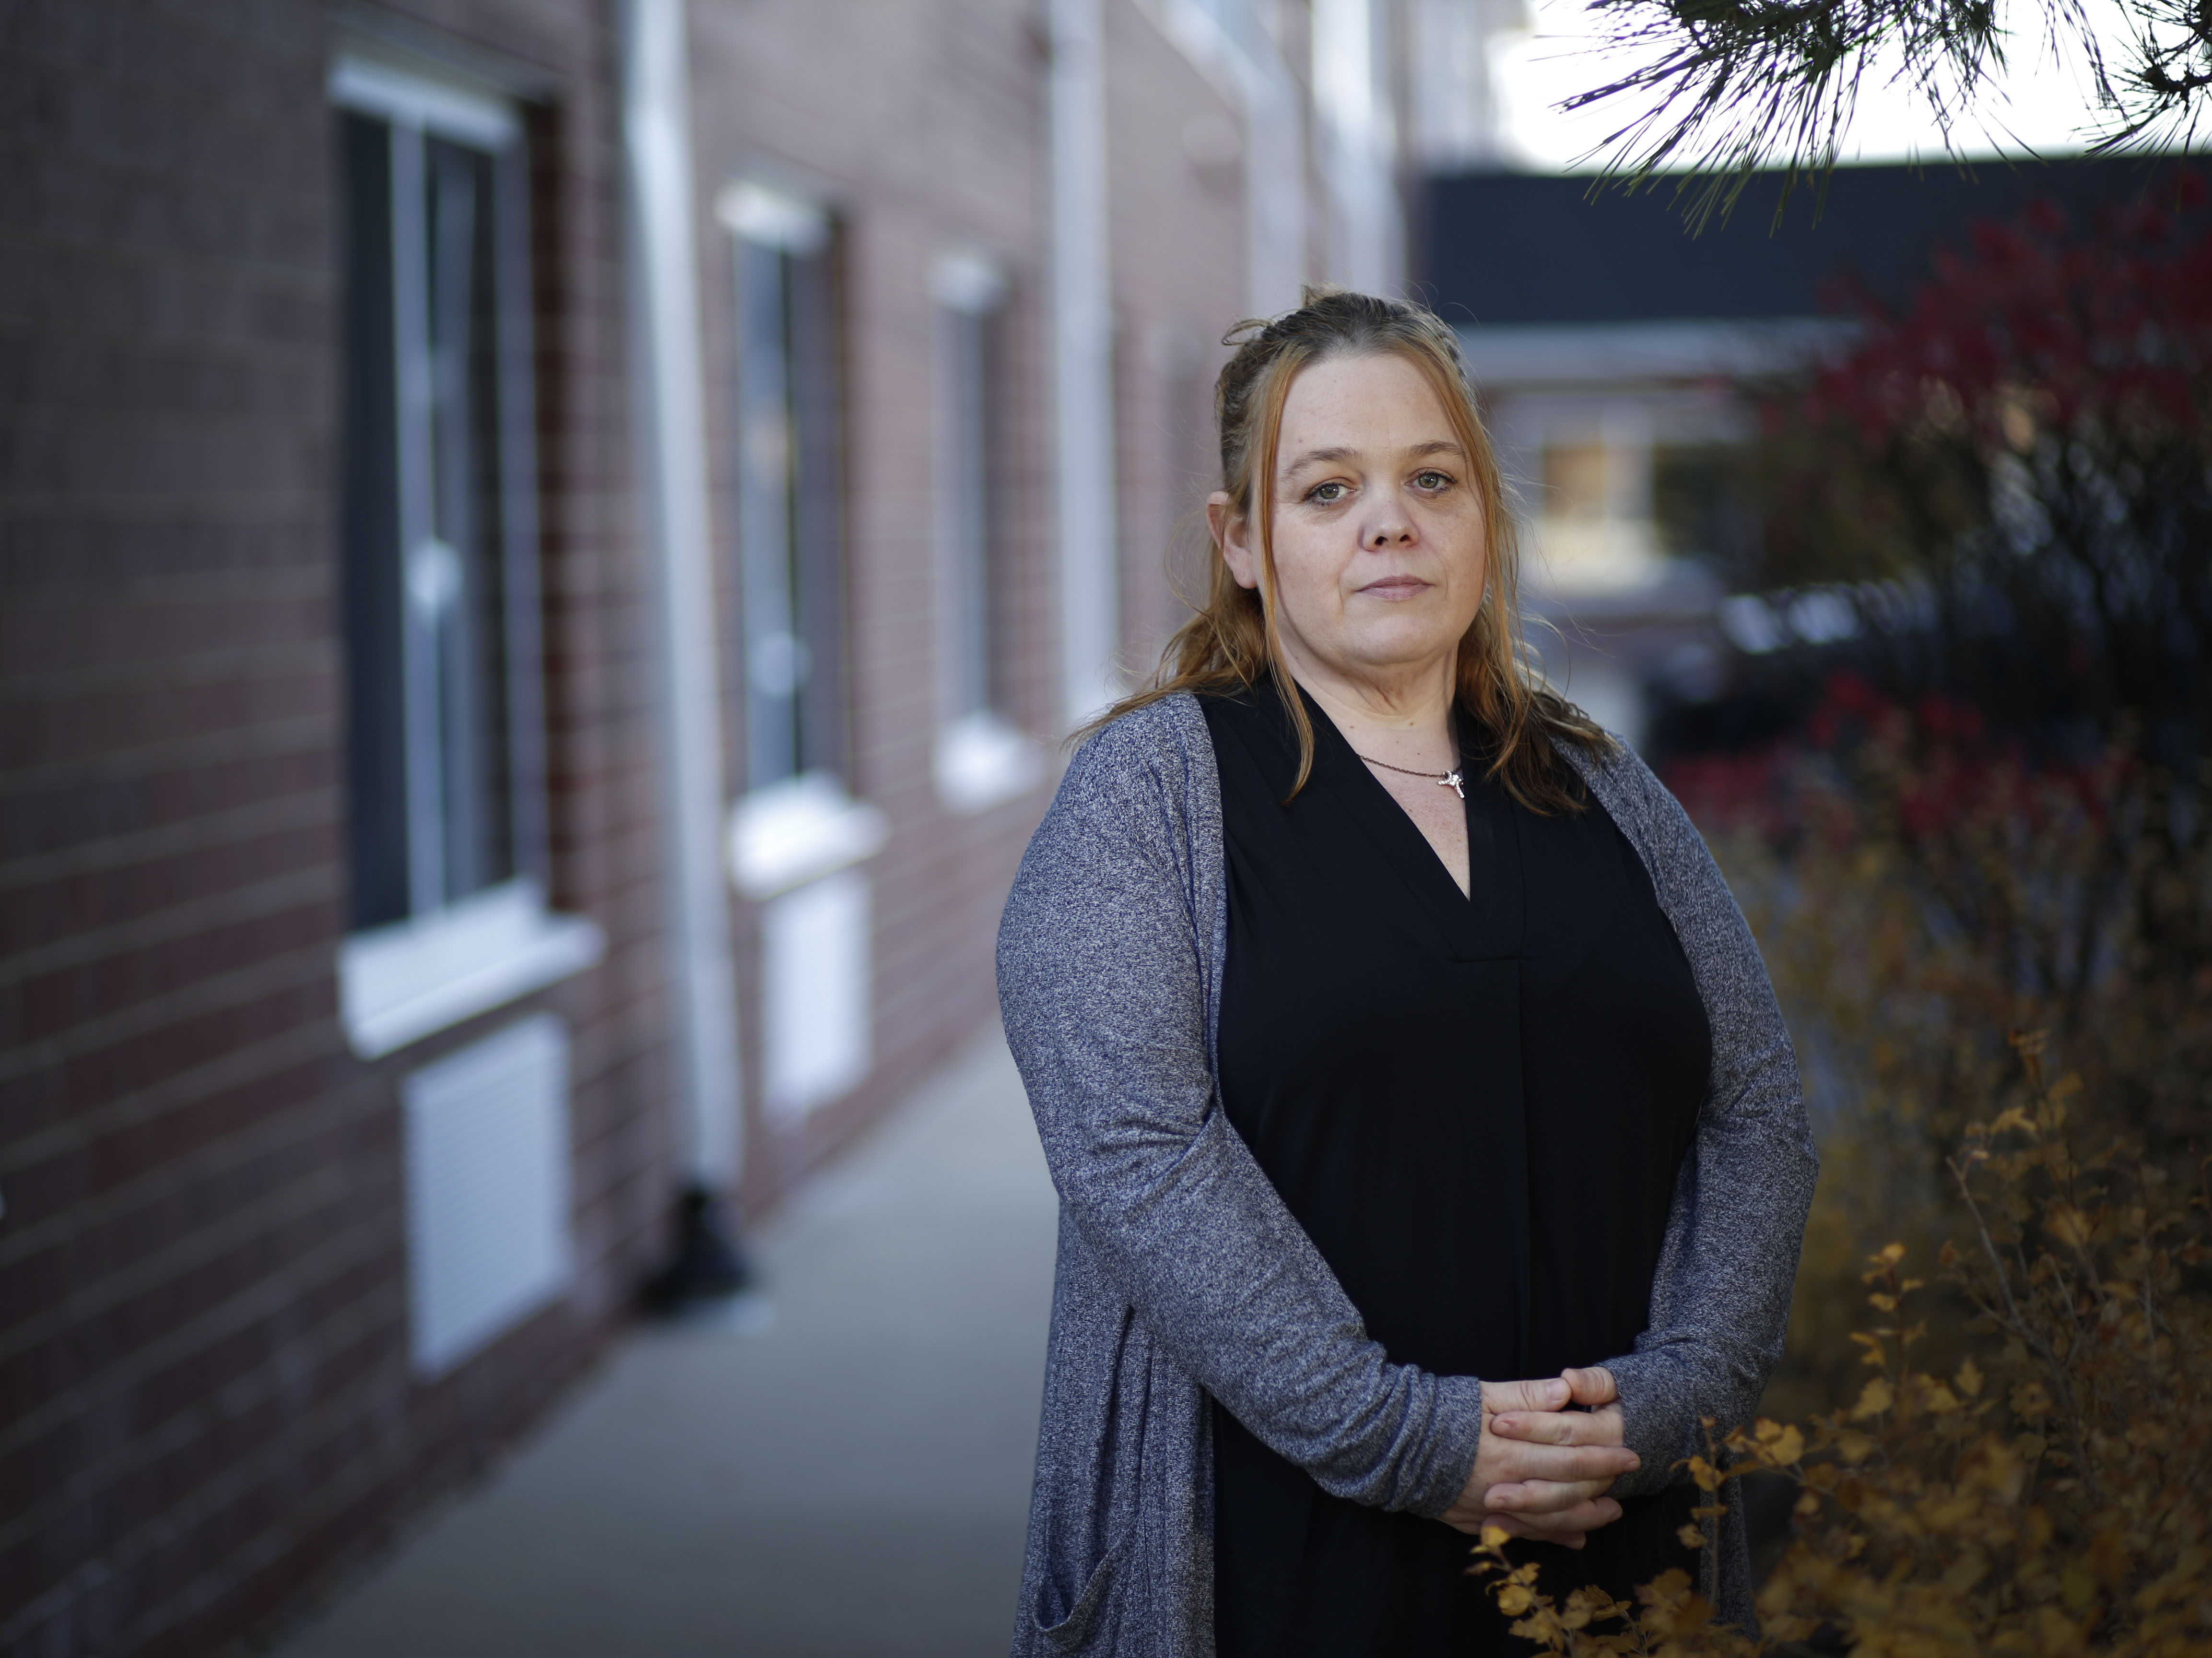 Kenosha shooters mother tries to deflect blame from her son